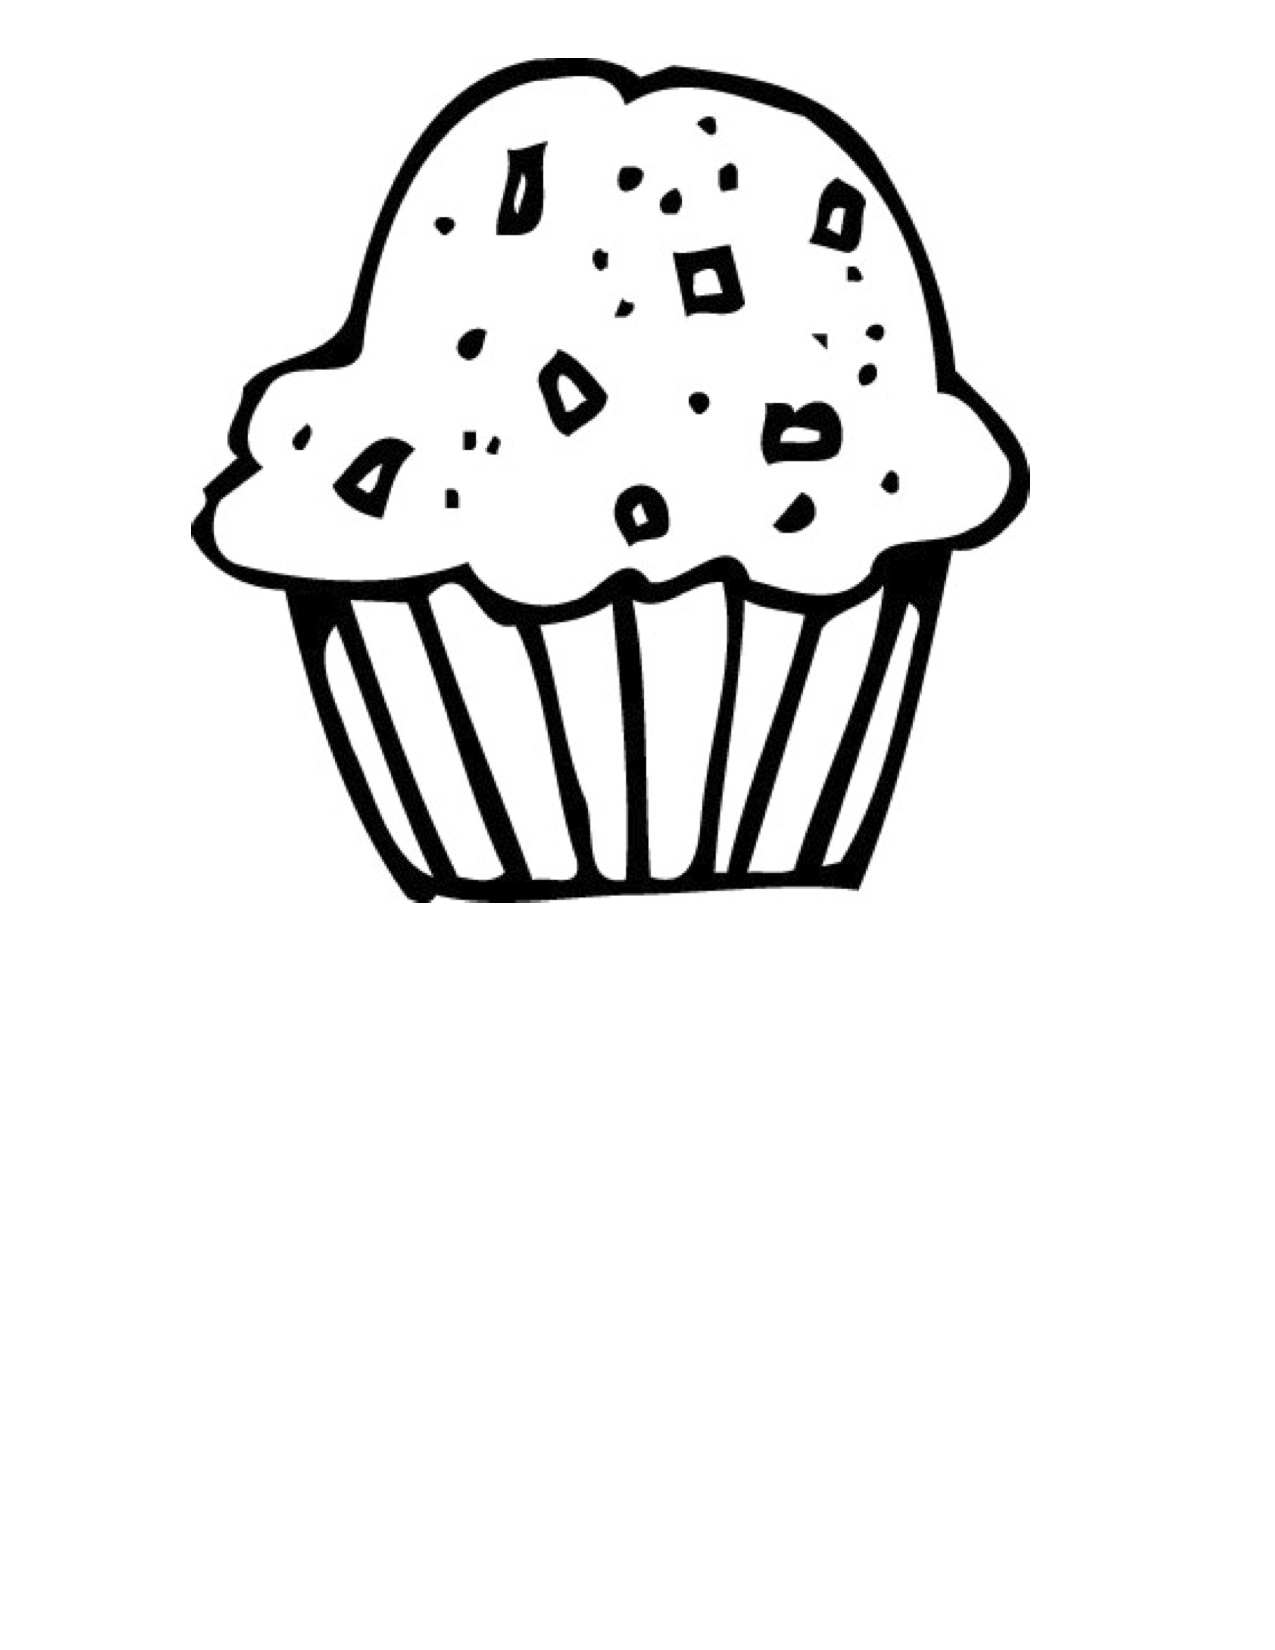 Candy black and white clipart black and white cornbread muffins.